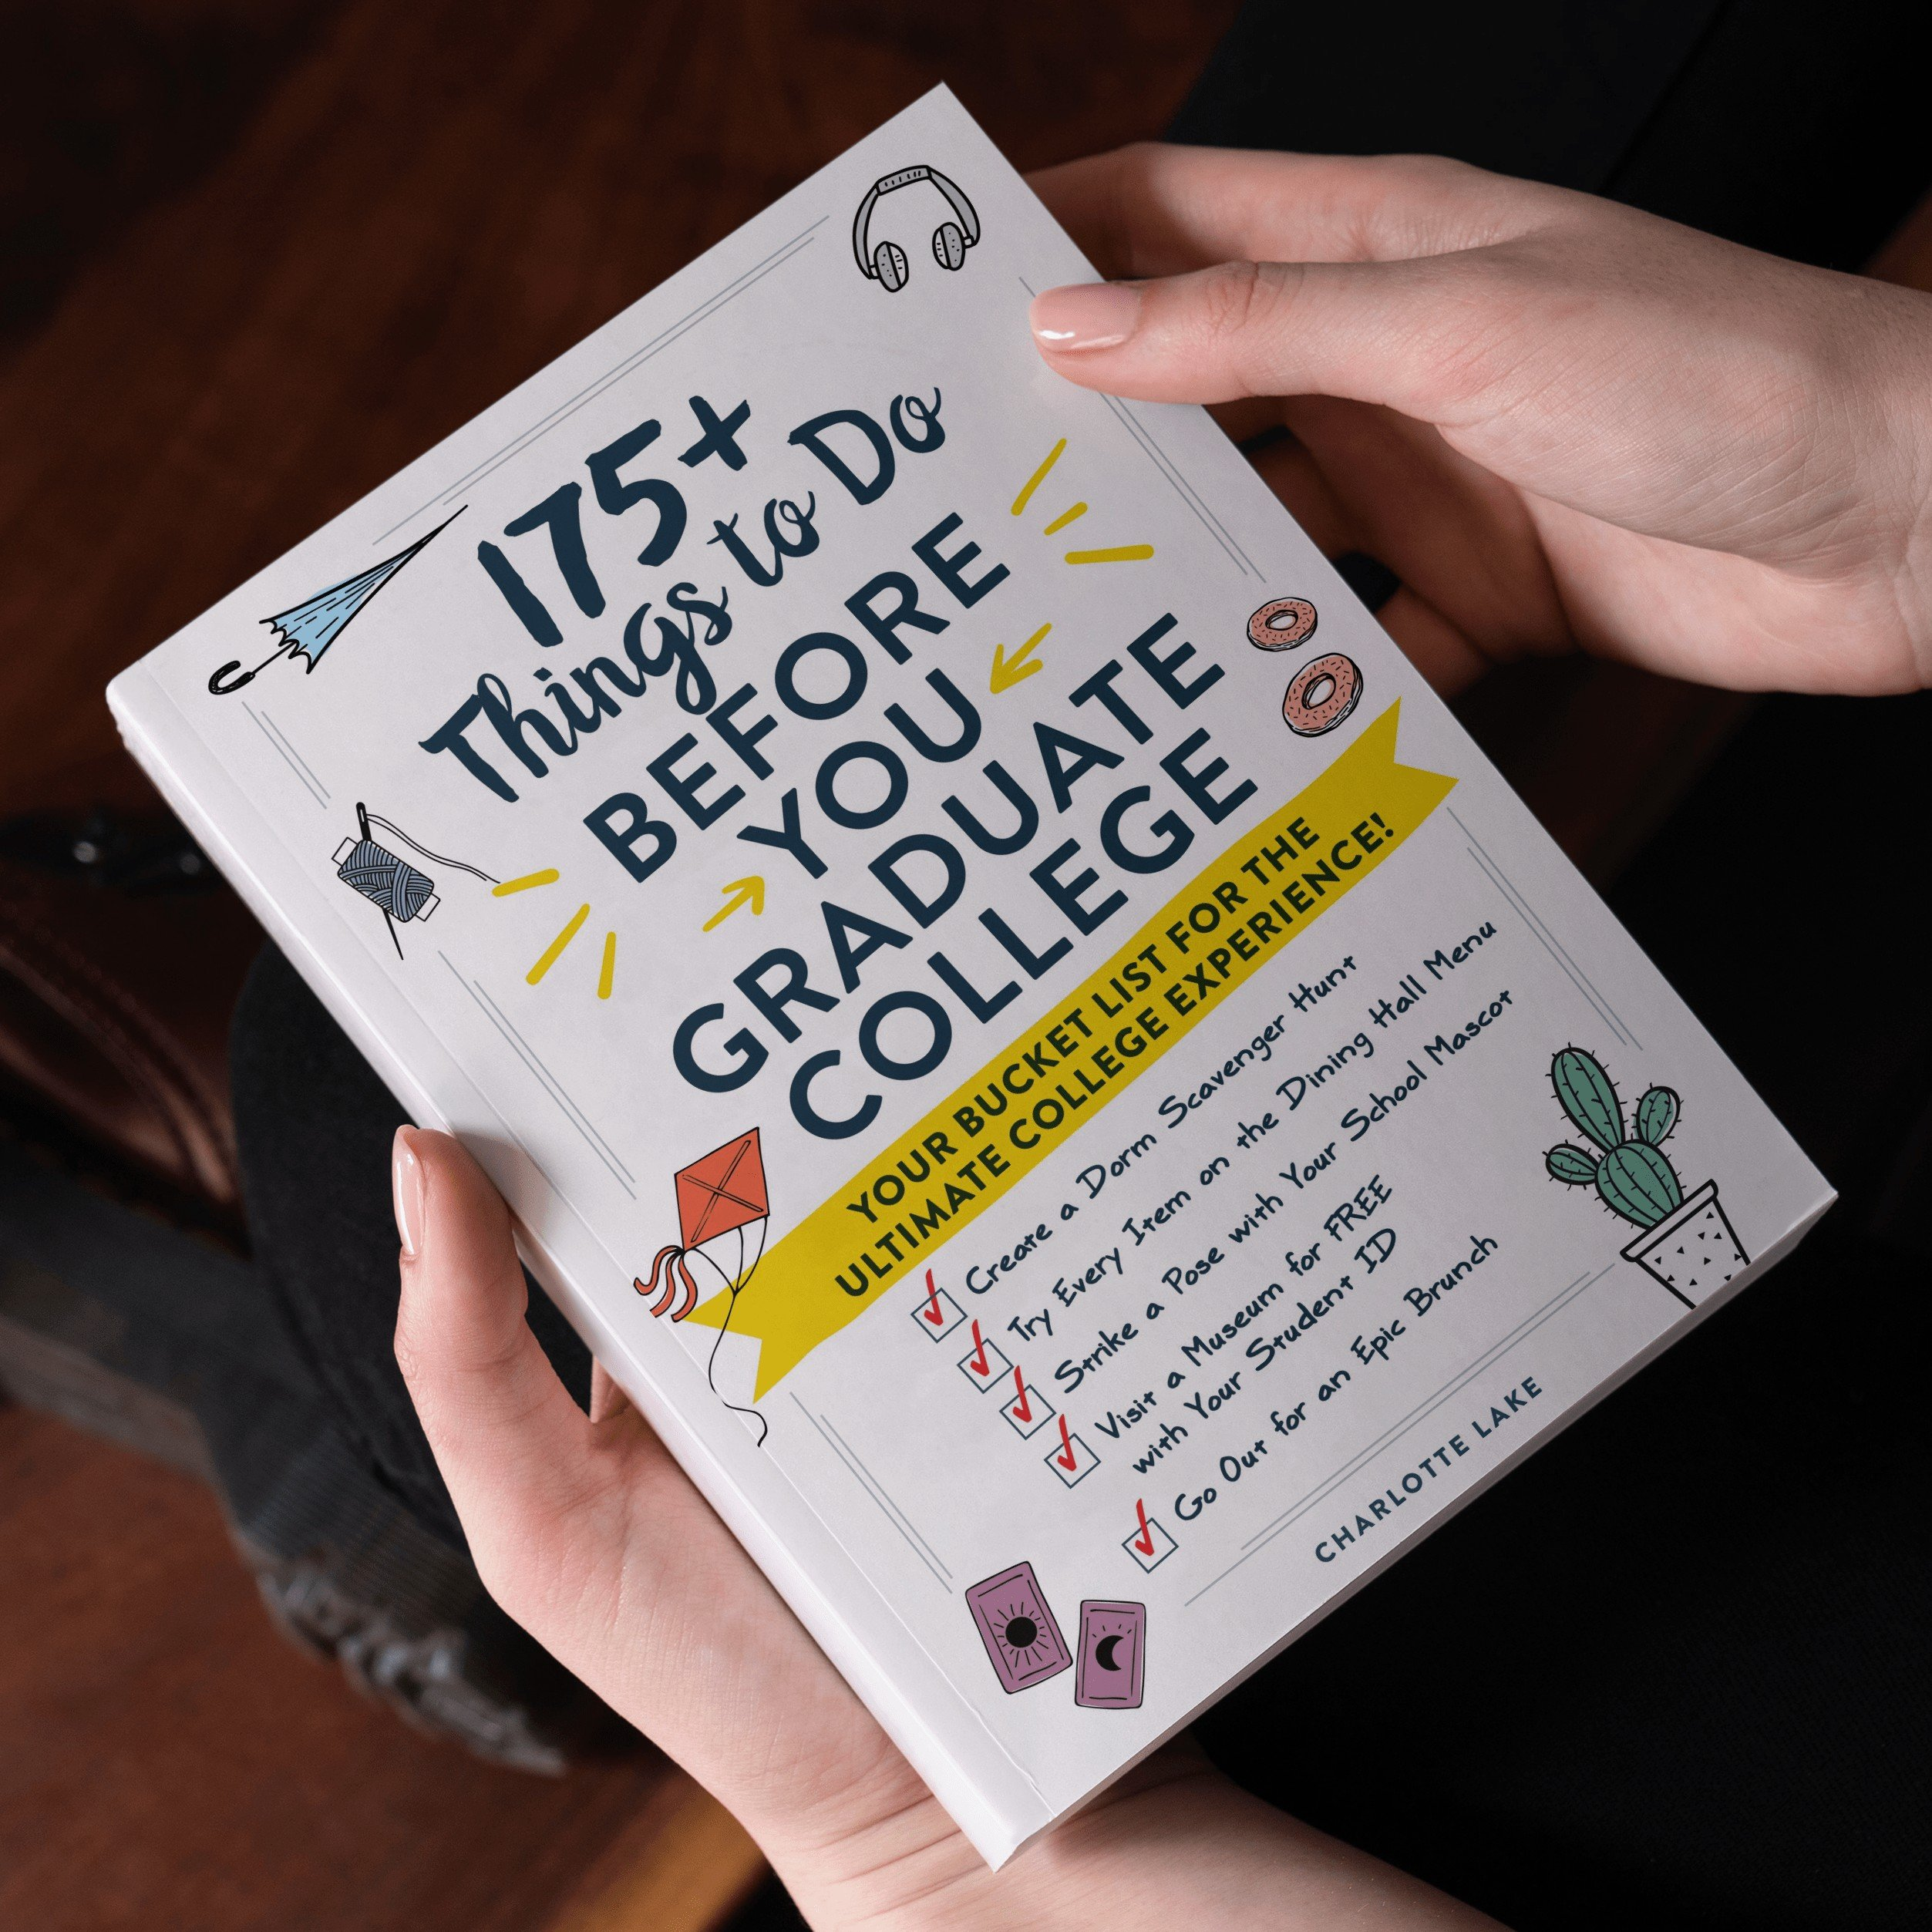 175+ Things to Do Before You Graduate College book held in hands in front of dark background